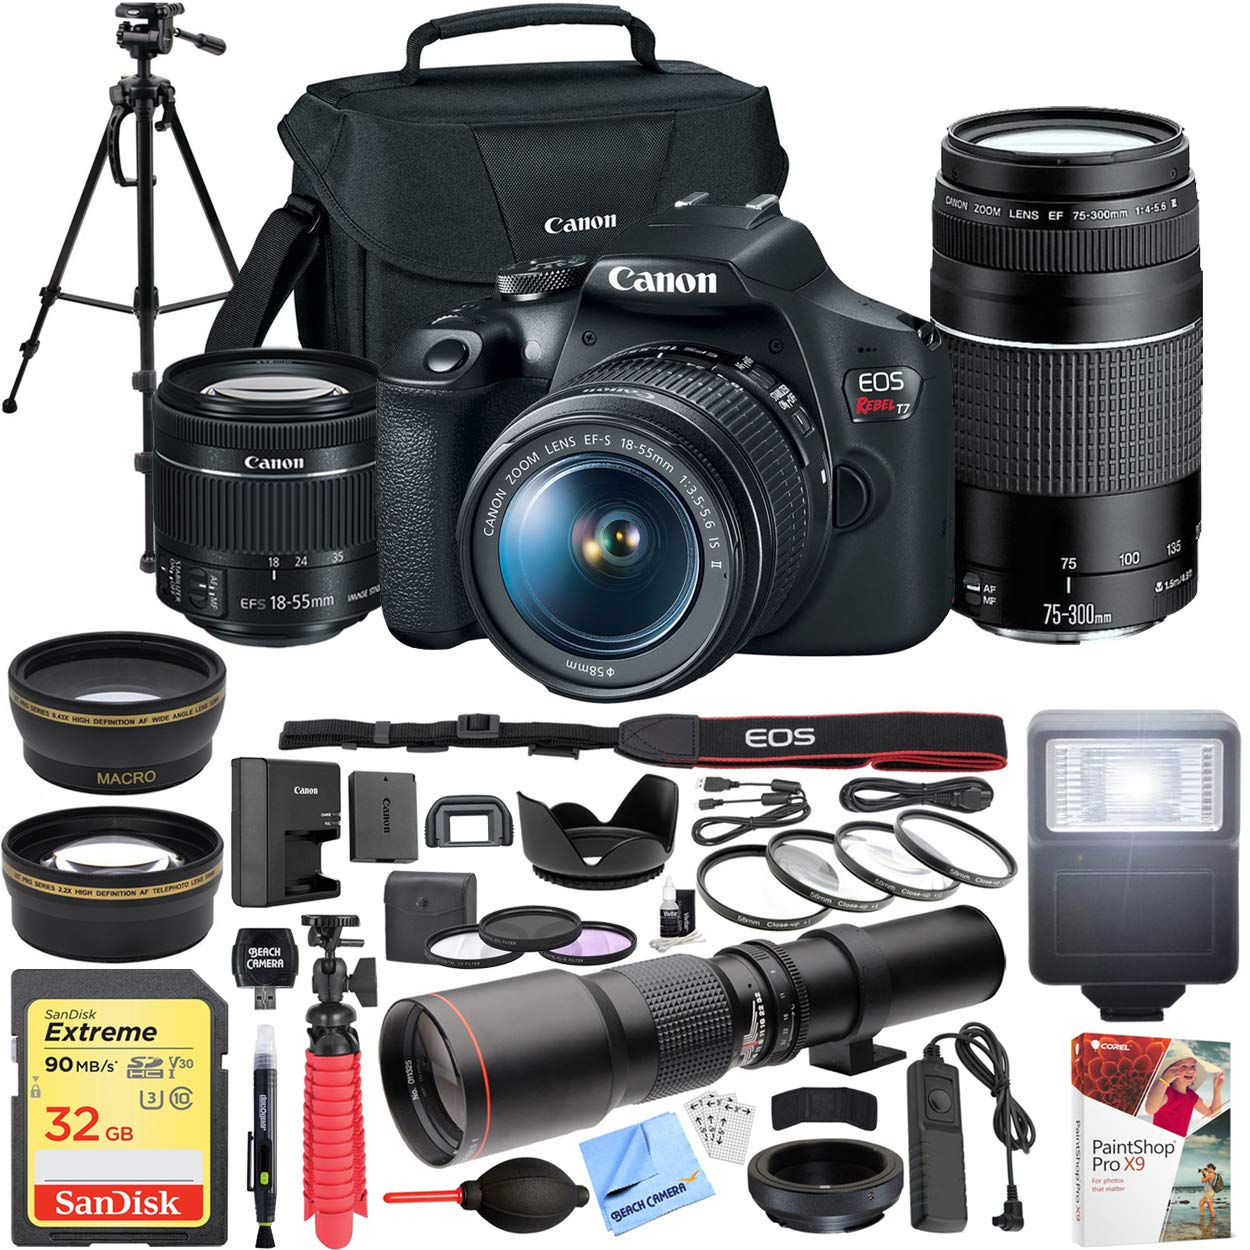 Canon EOS Rebel T7 DSLR Camera with EF18-55mm with EF 75-300mm Double Zoom Kit Bundle with 500mm Preset Telephoto Lens, 32GB Memory Card, Tripod, Paintshop Pro 2018 and Accessories (10 Items)